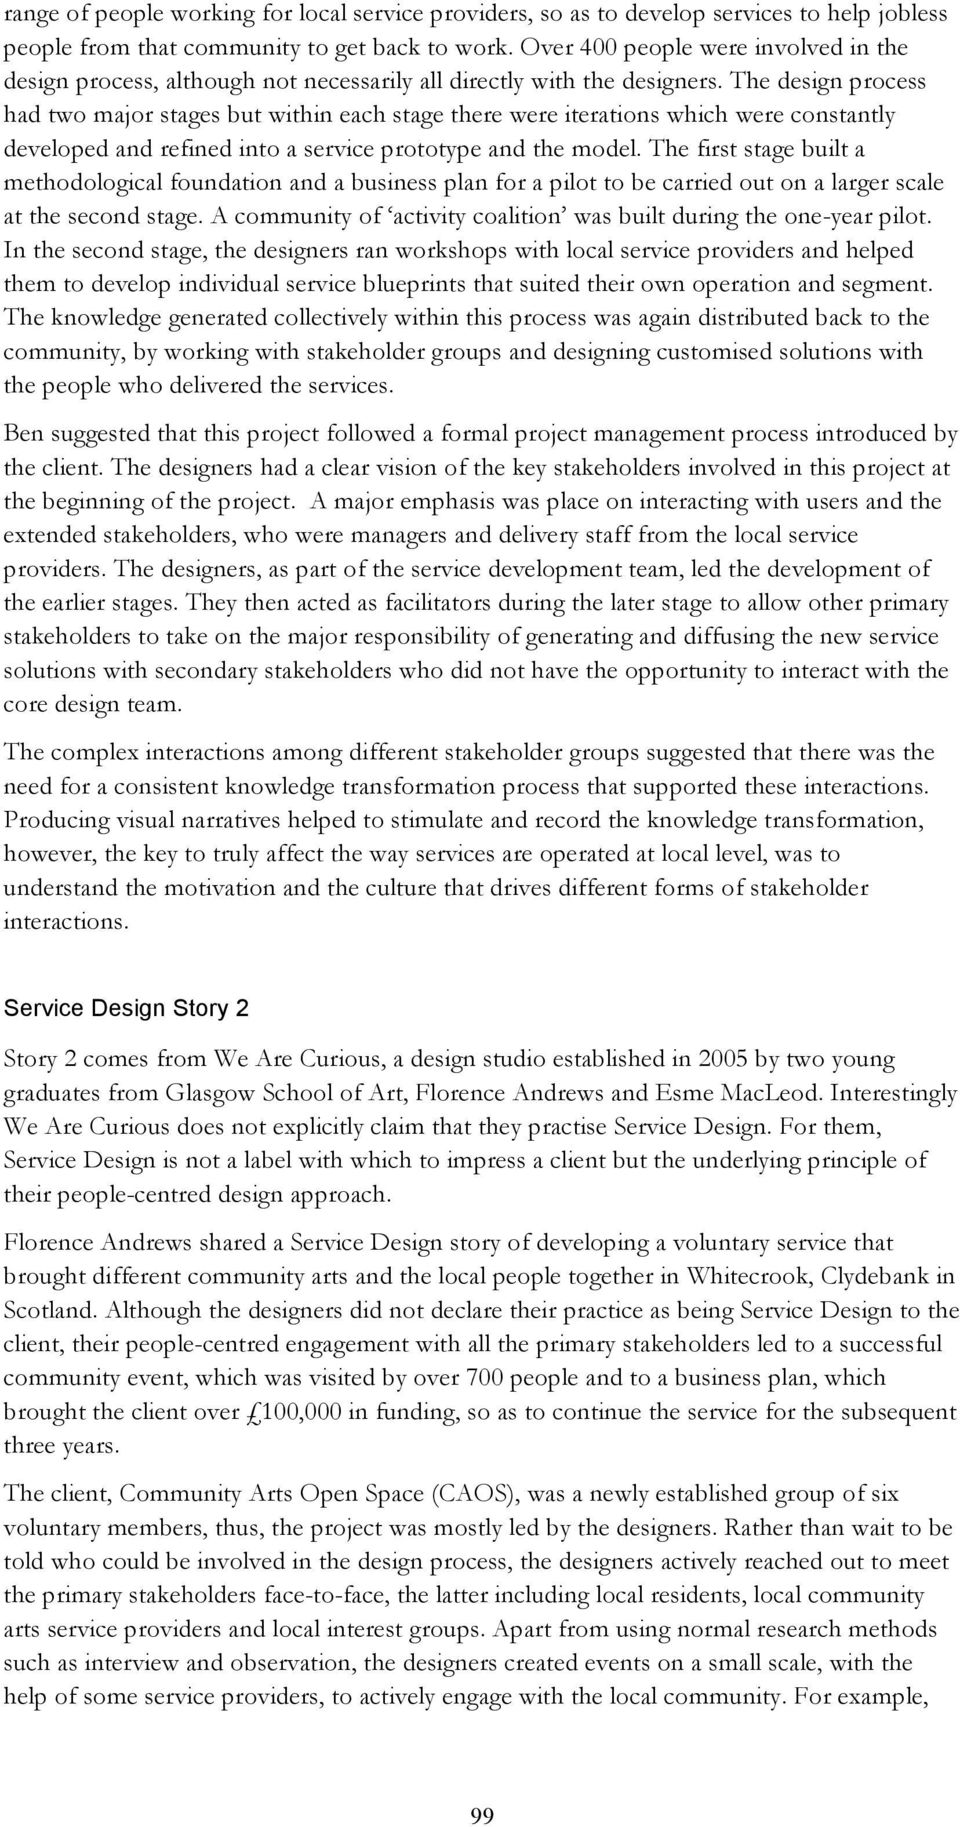 The design process had two major stages but within each stage there were iterations which were constantly developed and refined into a service prototype and the model.